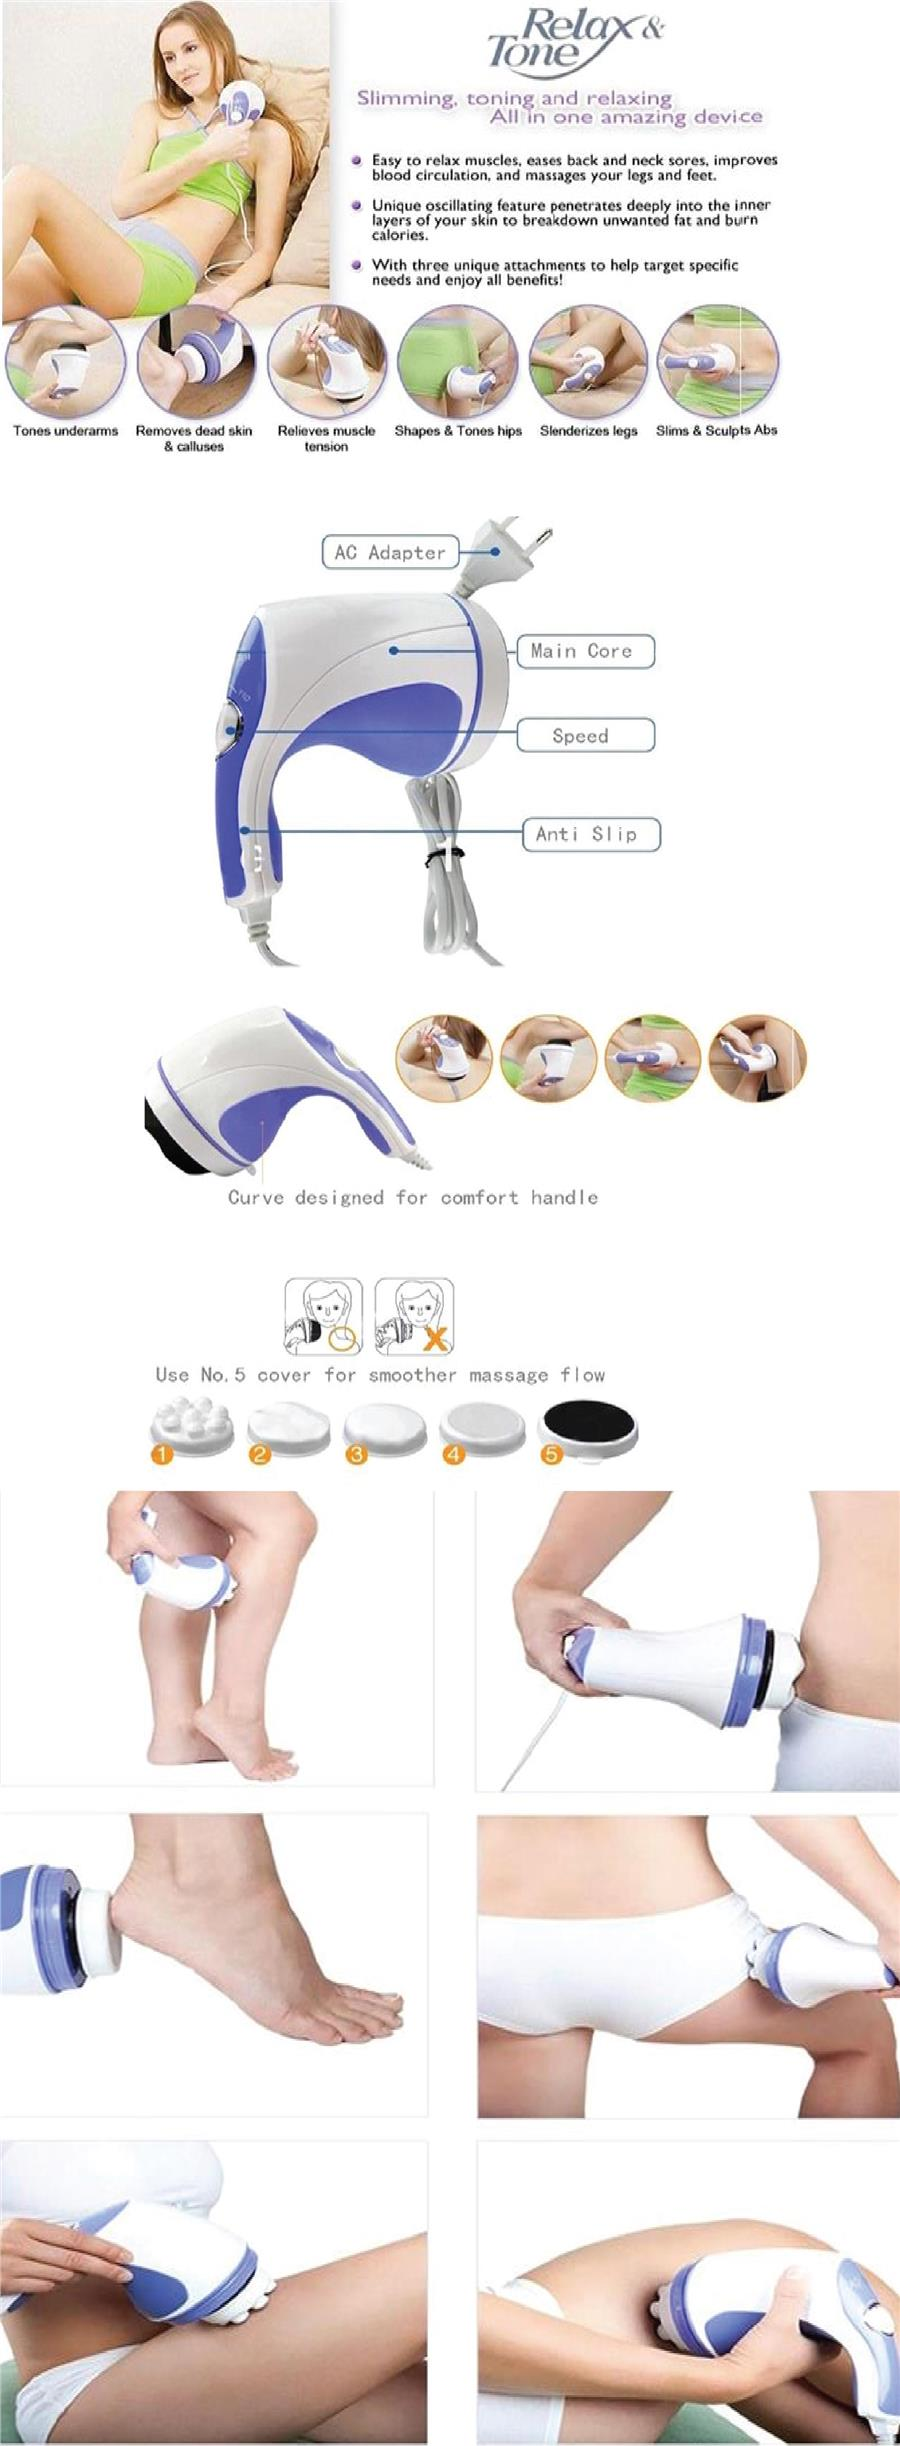 Handheld Relax&Spin Tone Whole Body Massaging Slimming Toning Relaxing